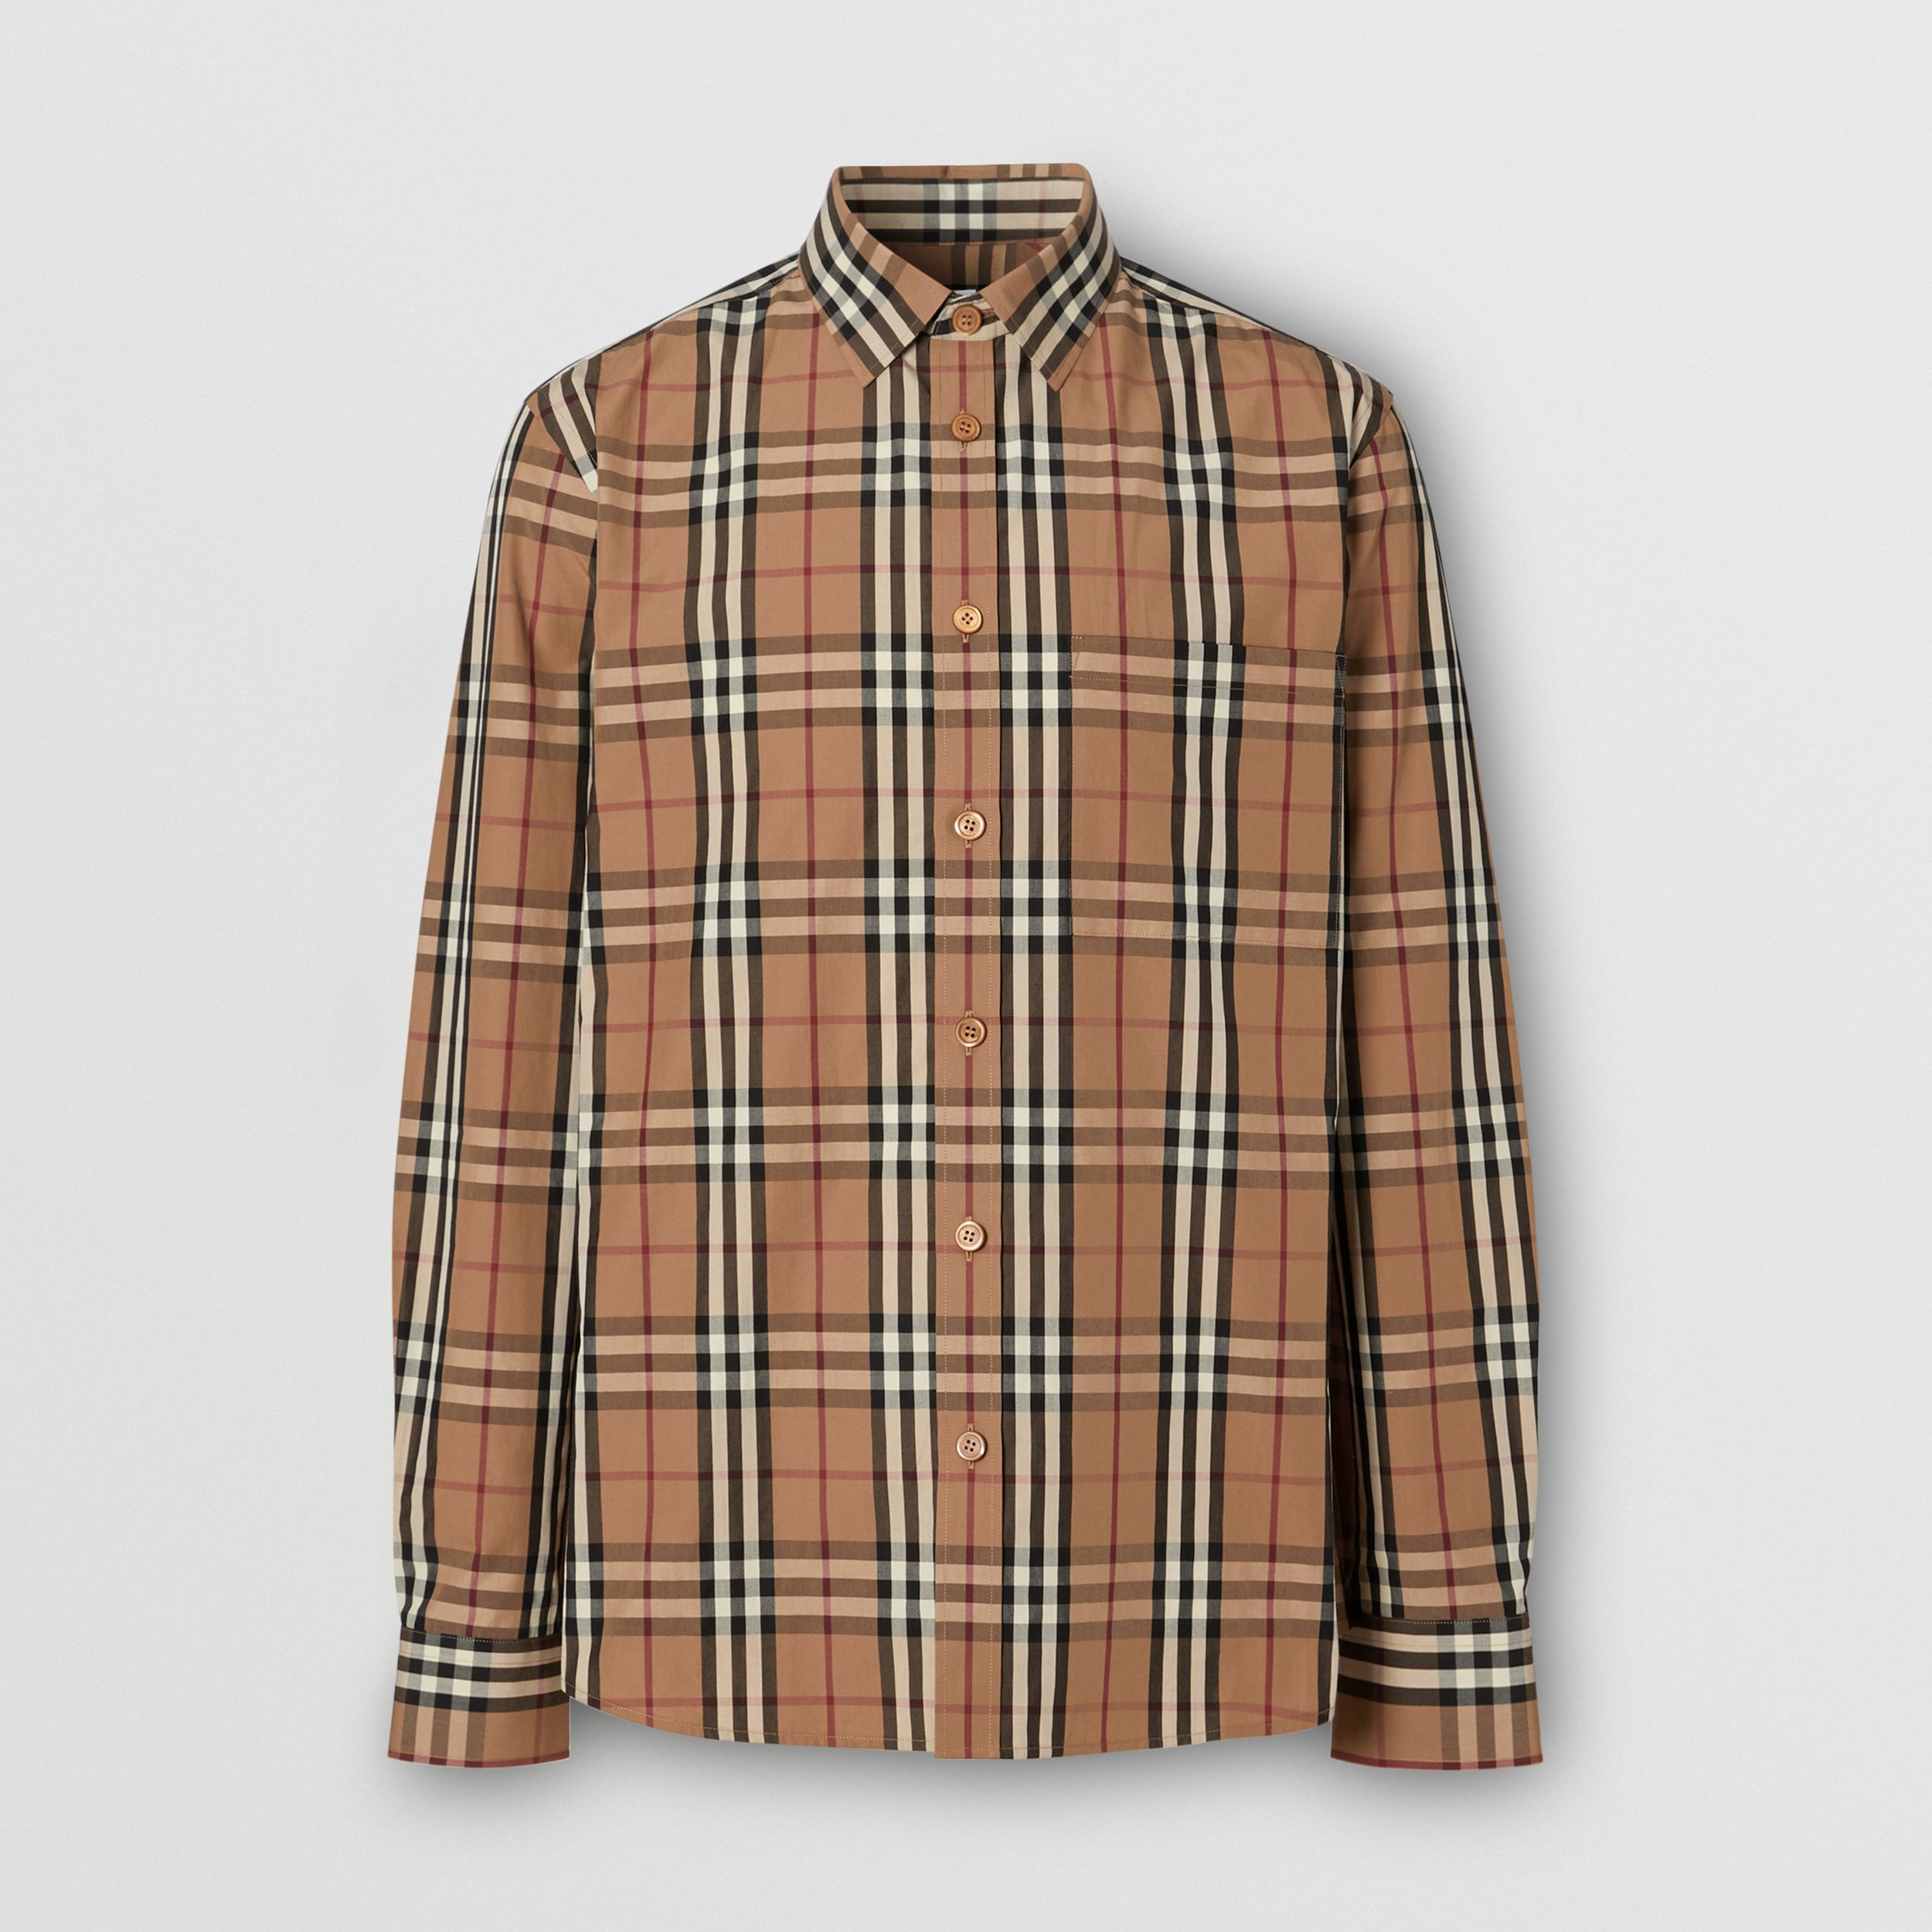 Vintage Check Cotton Poplin Shirt in Birch Brown - Men | Burberry - 4